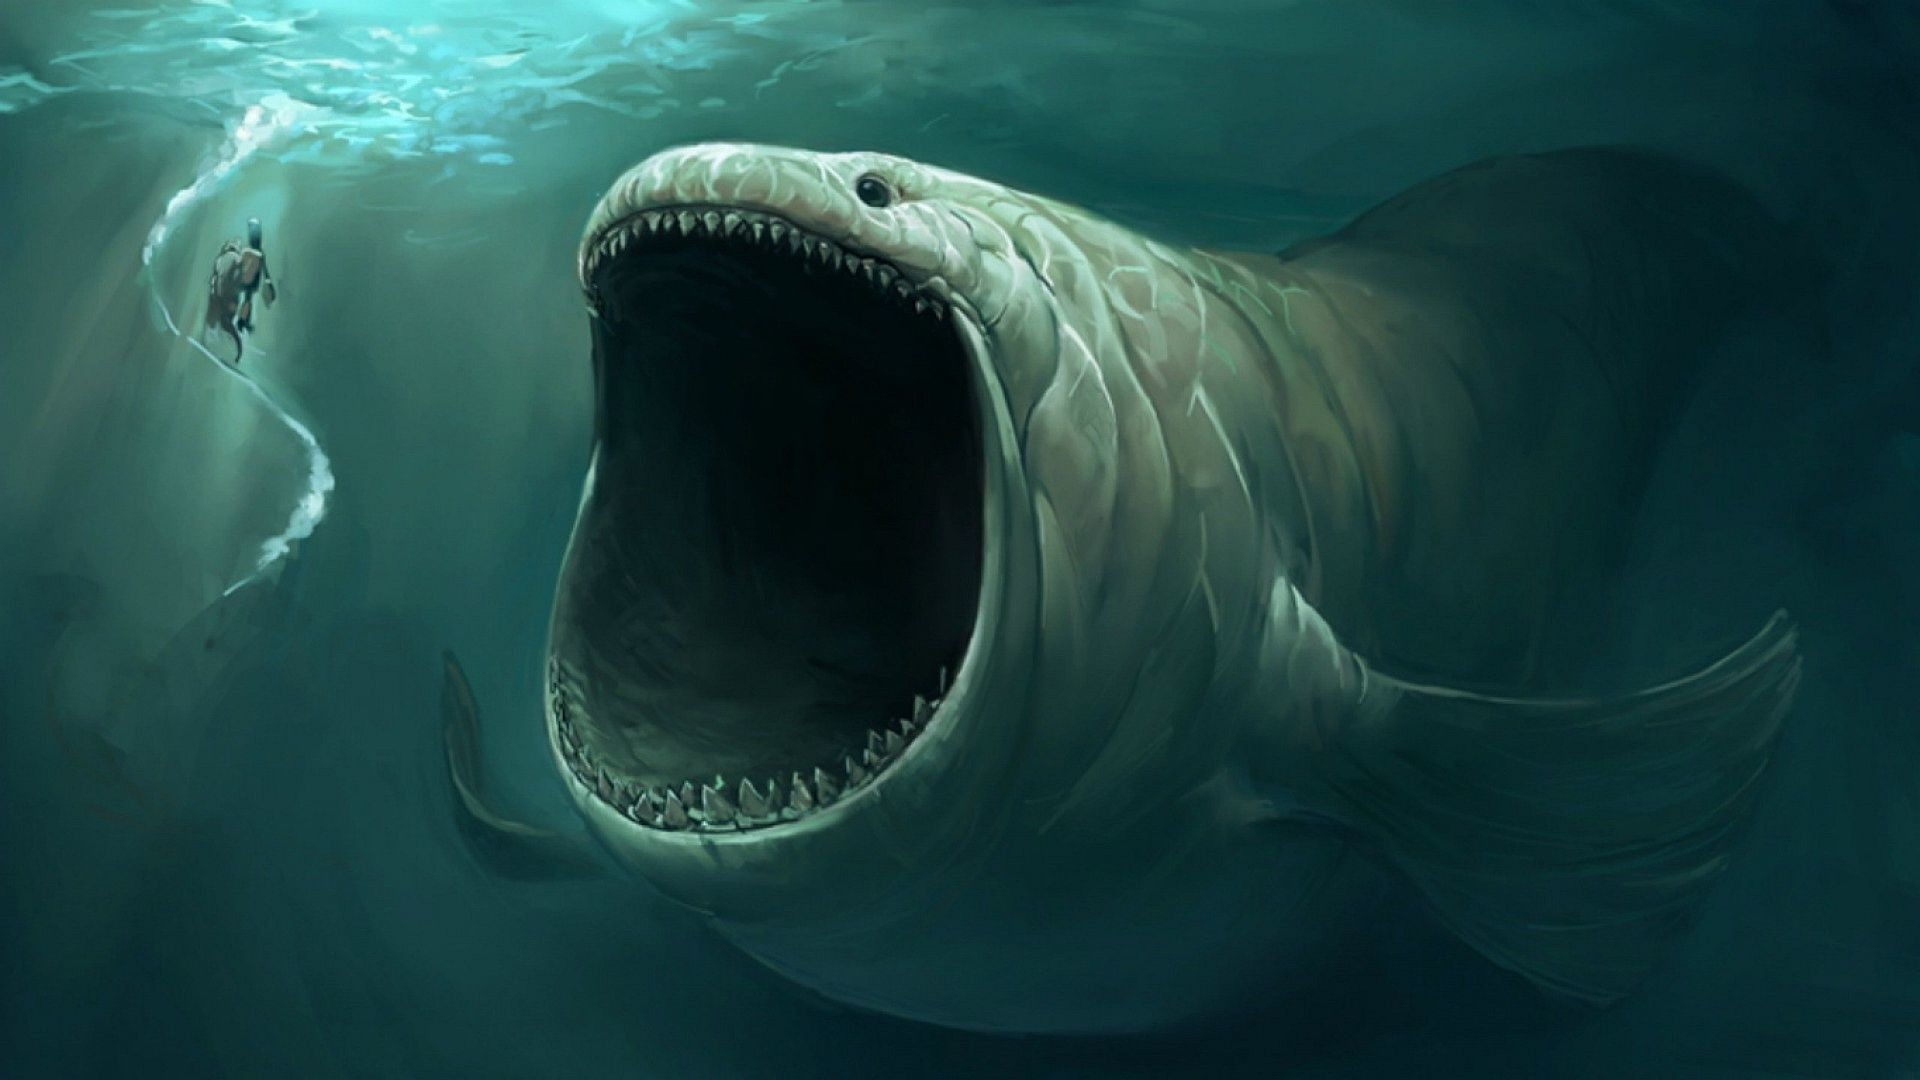 Best 3d Moving Wallpapers For Desktop Cool Fish Backgrounds 183 ①